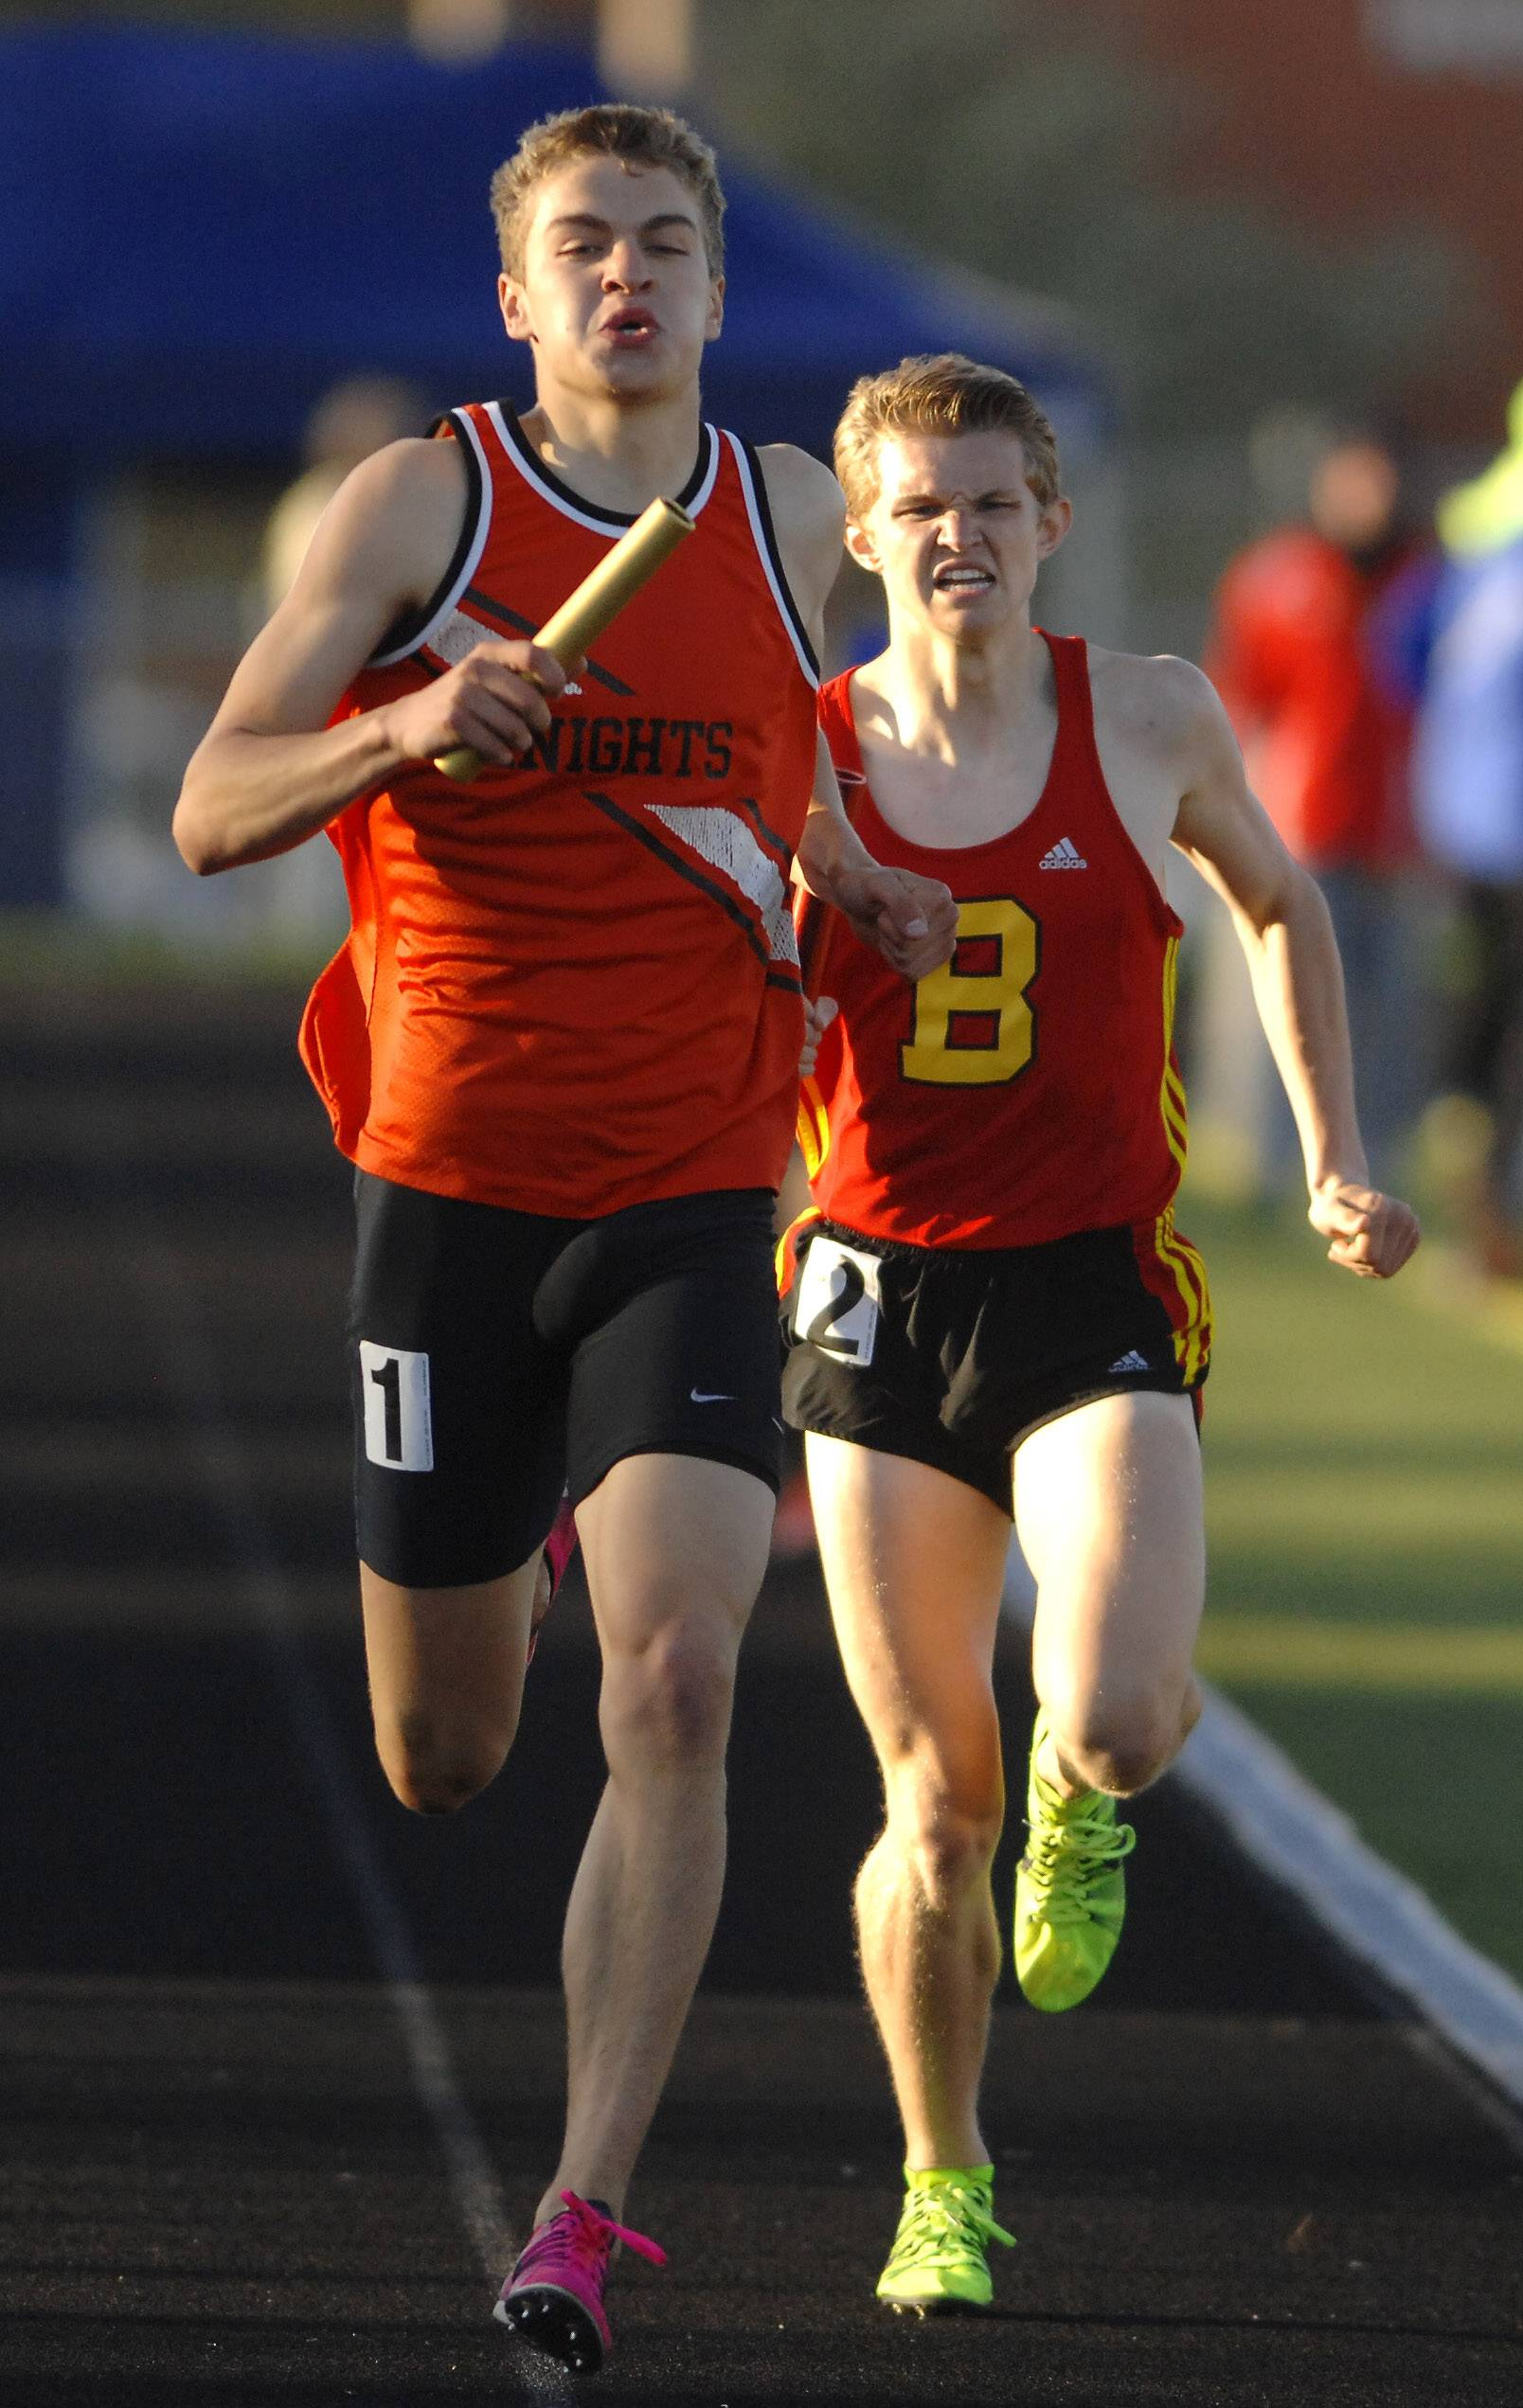 Nathaniel Kucera of Kaneland edges out Ryan Wieties of Batavia on the anchor leg of the 4x800-meter relay at the Kane County boys track meet in Streamwood Friday.